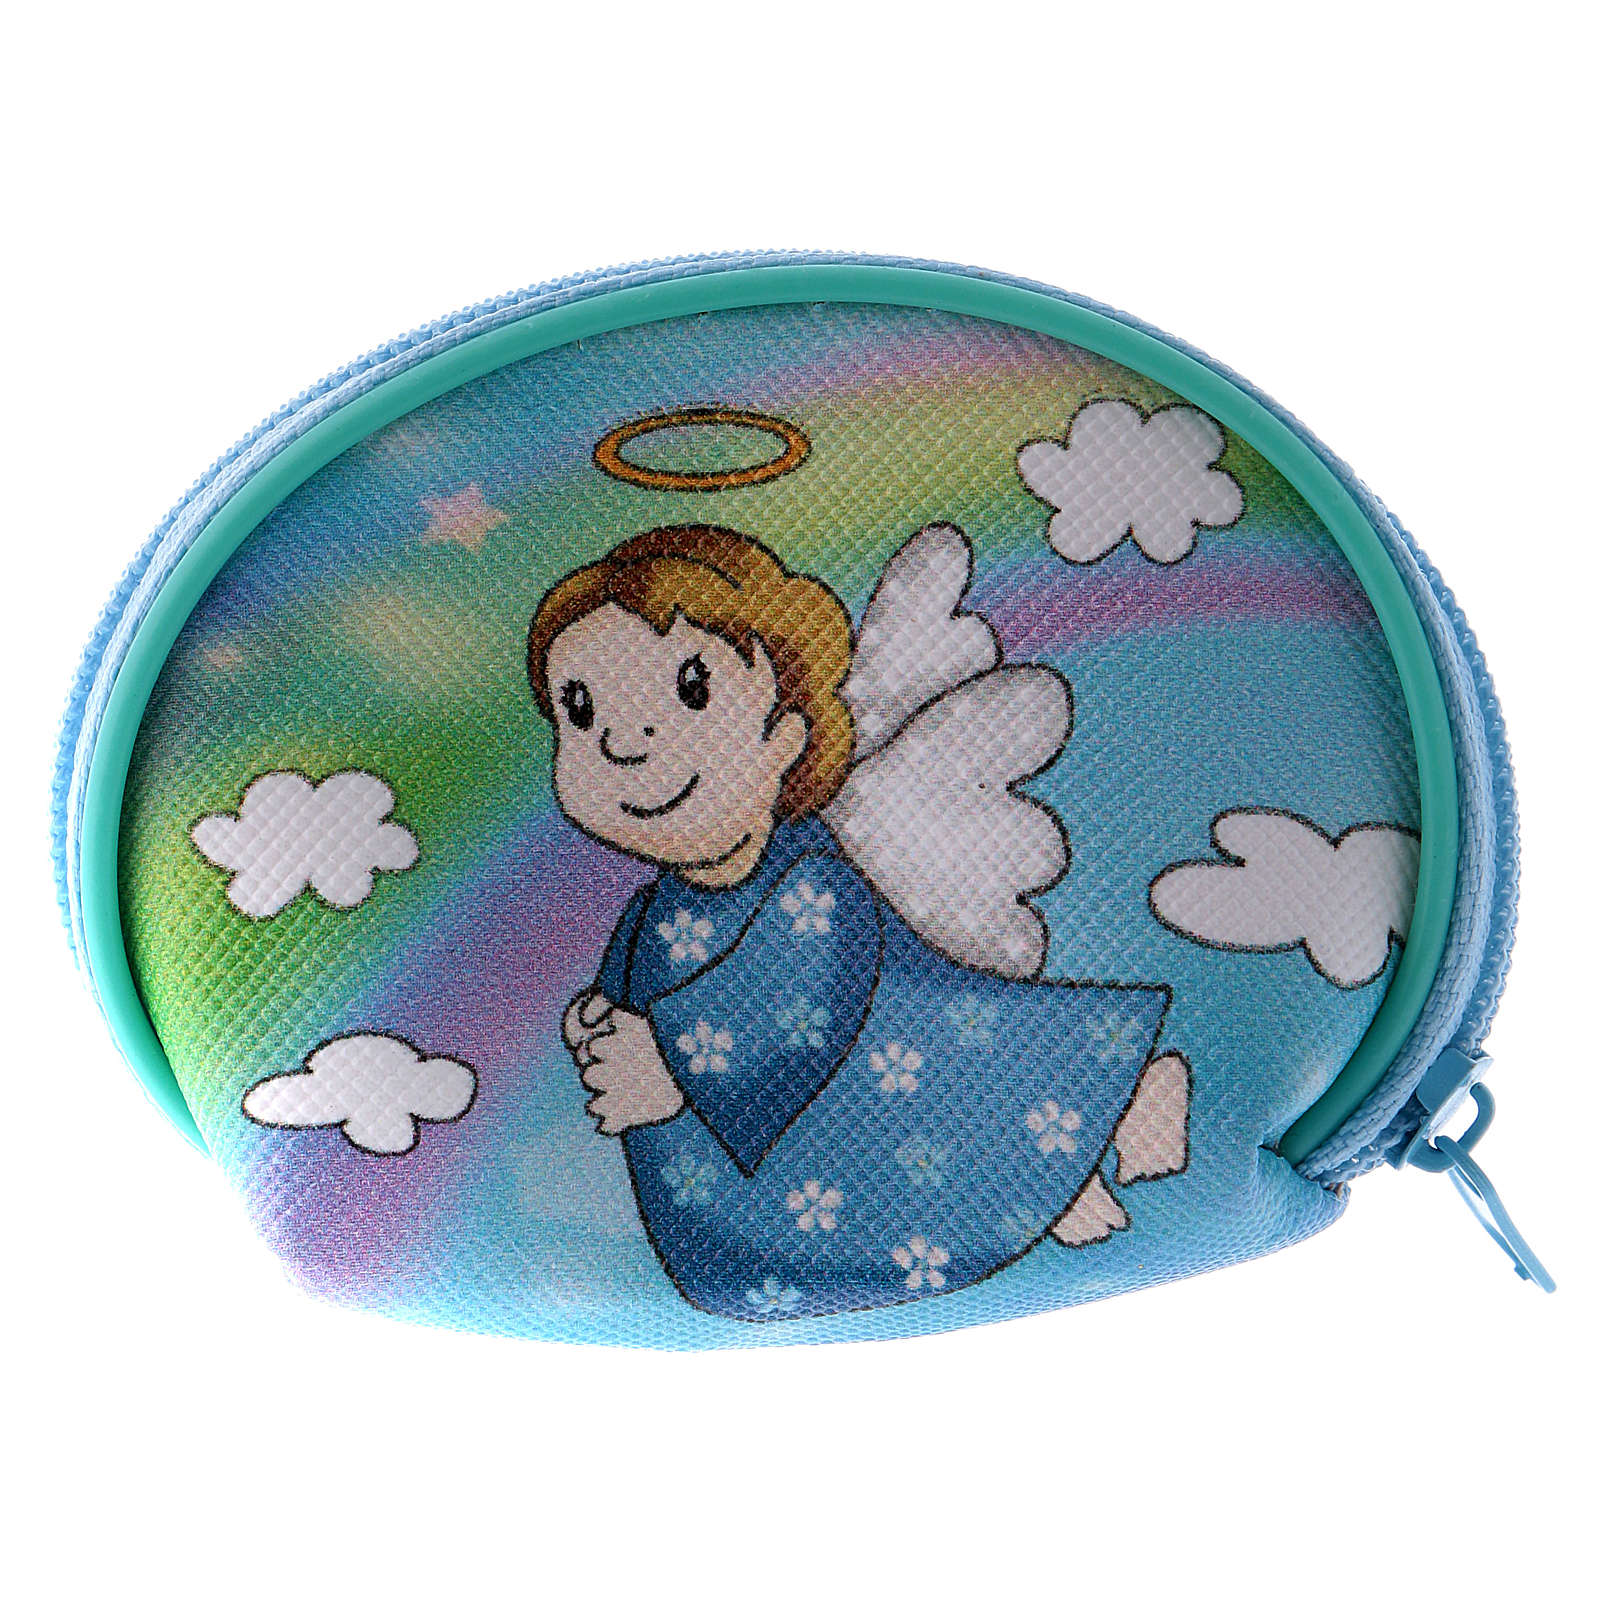 Purse rosary holder 7x6 cm with Angel dressed in light blue image 4